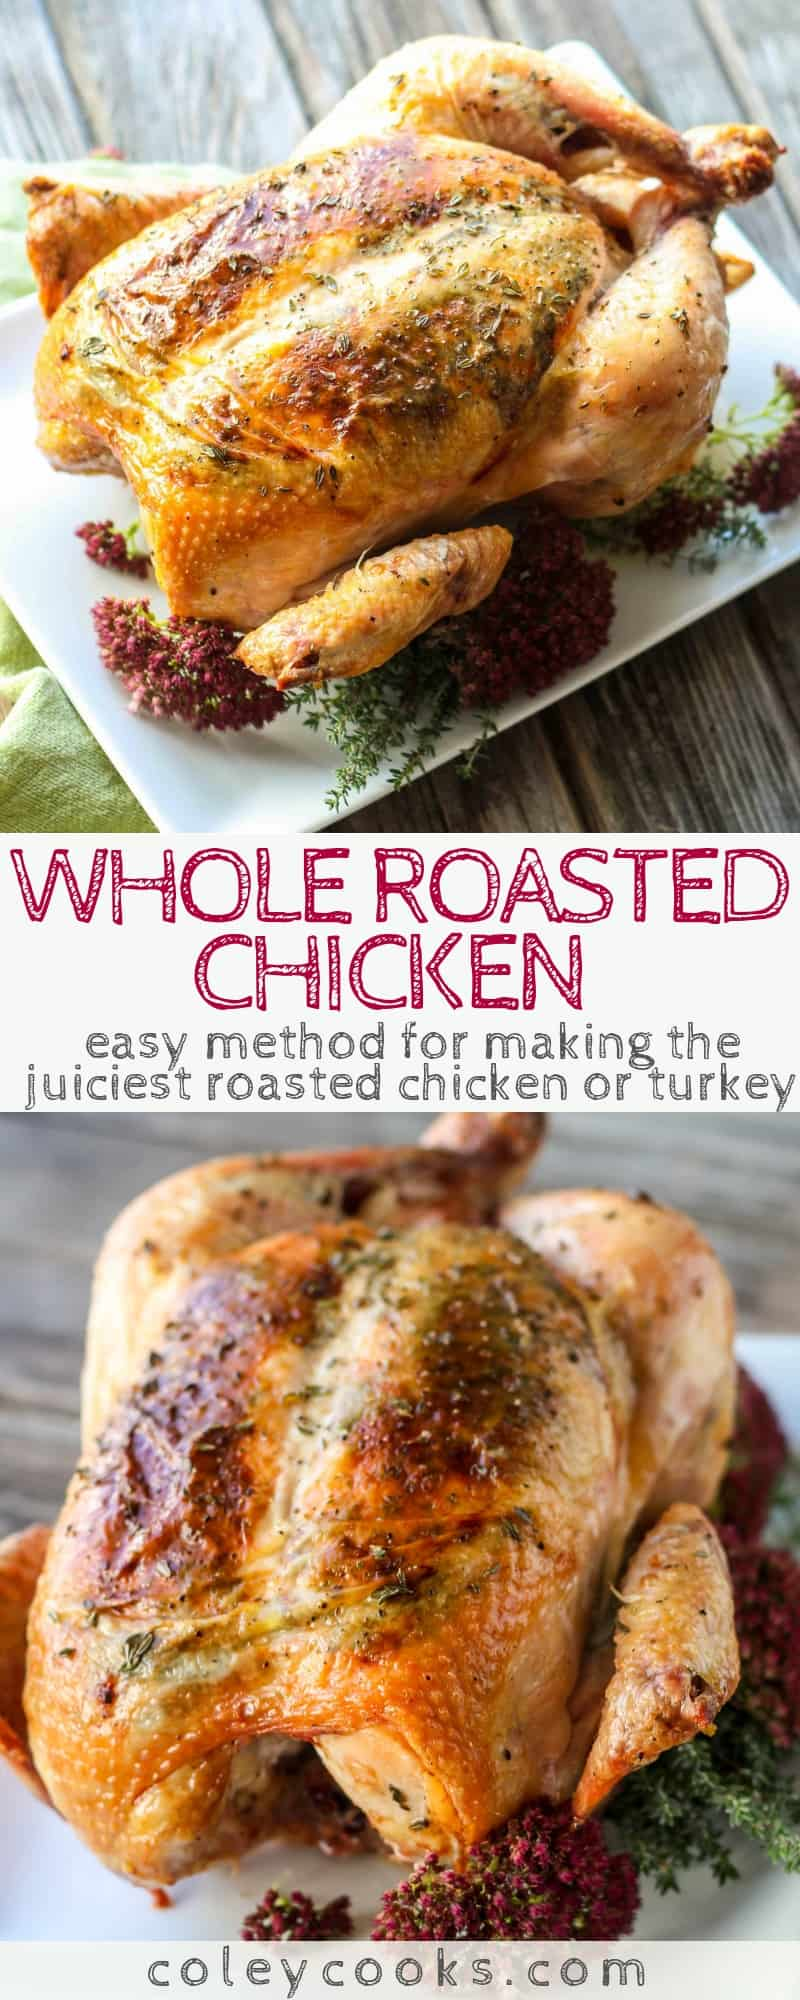 Whole Roasted Chicken with Herbs | This easy method for roasting a whole chicken with herbs is a foolproof method for super juicy chicken or turkey! #roasted #whole #chicken #turkey #herb #butter #thanksgiving #recipe | ColeyCooks.com